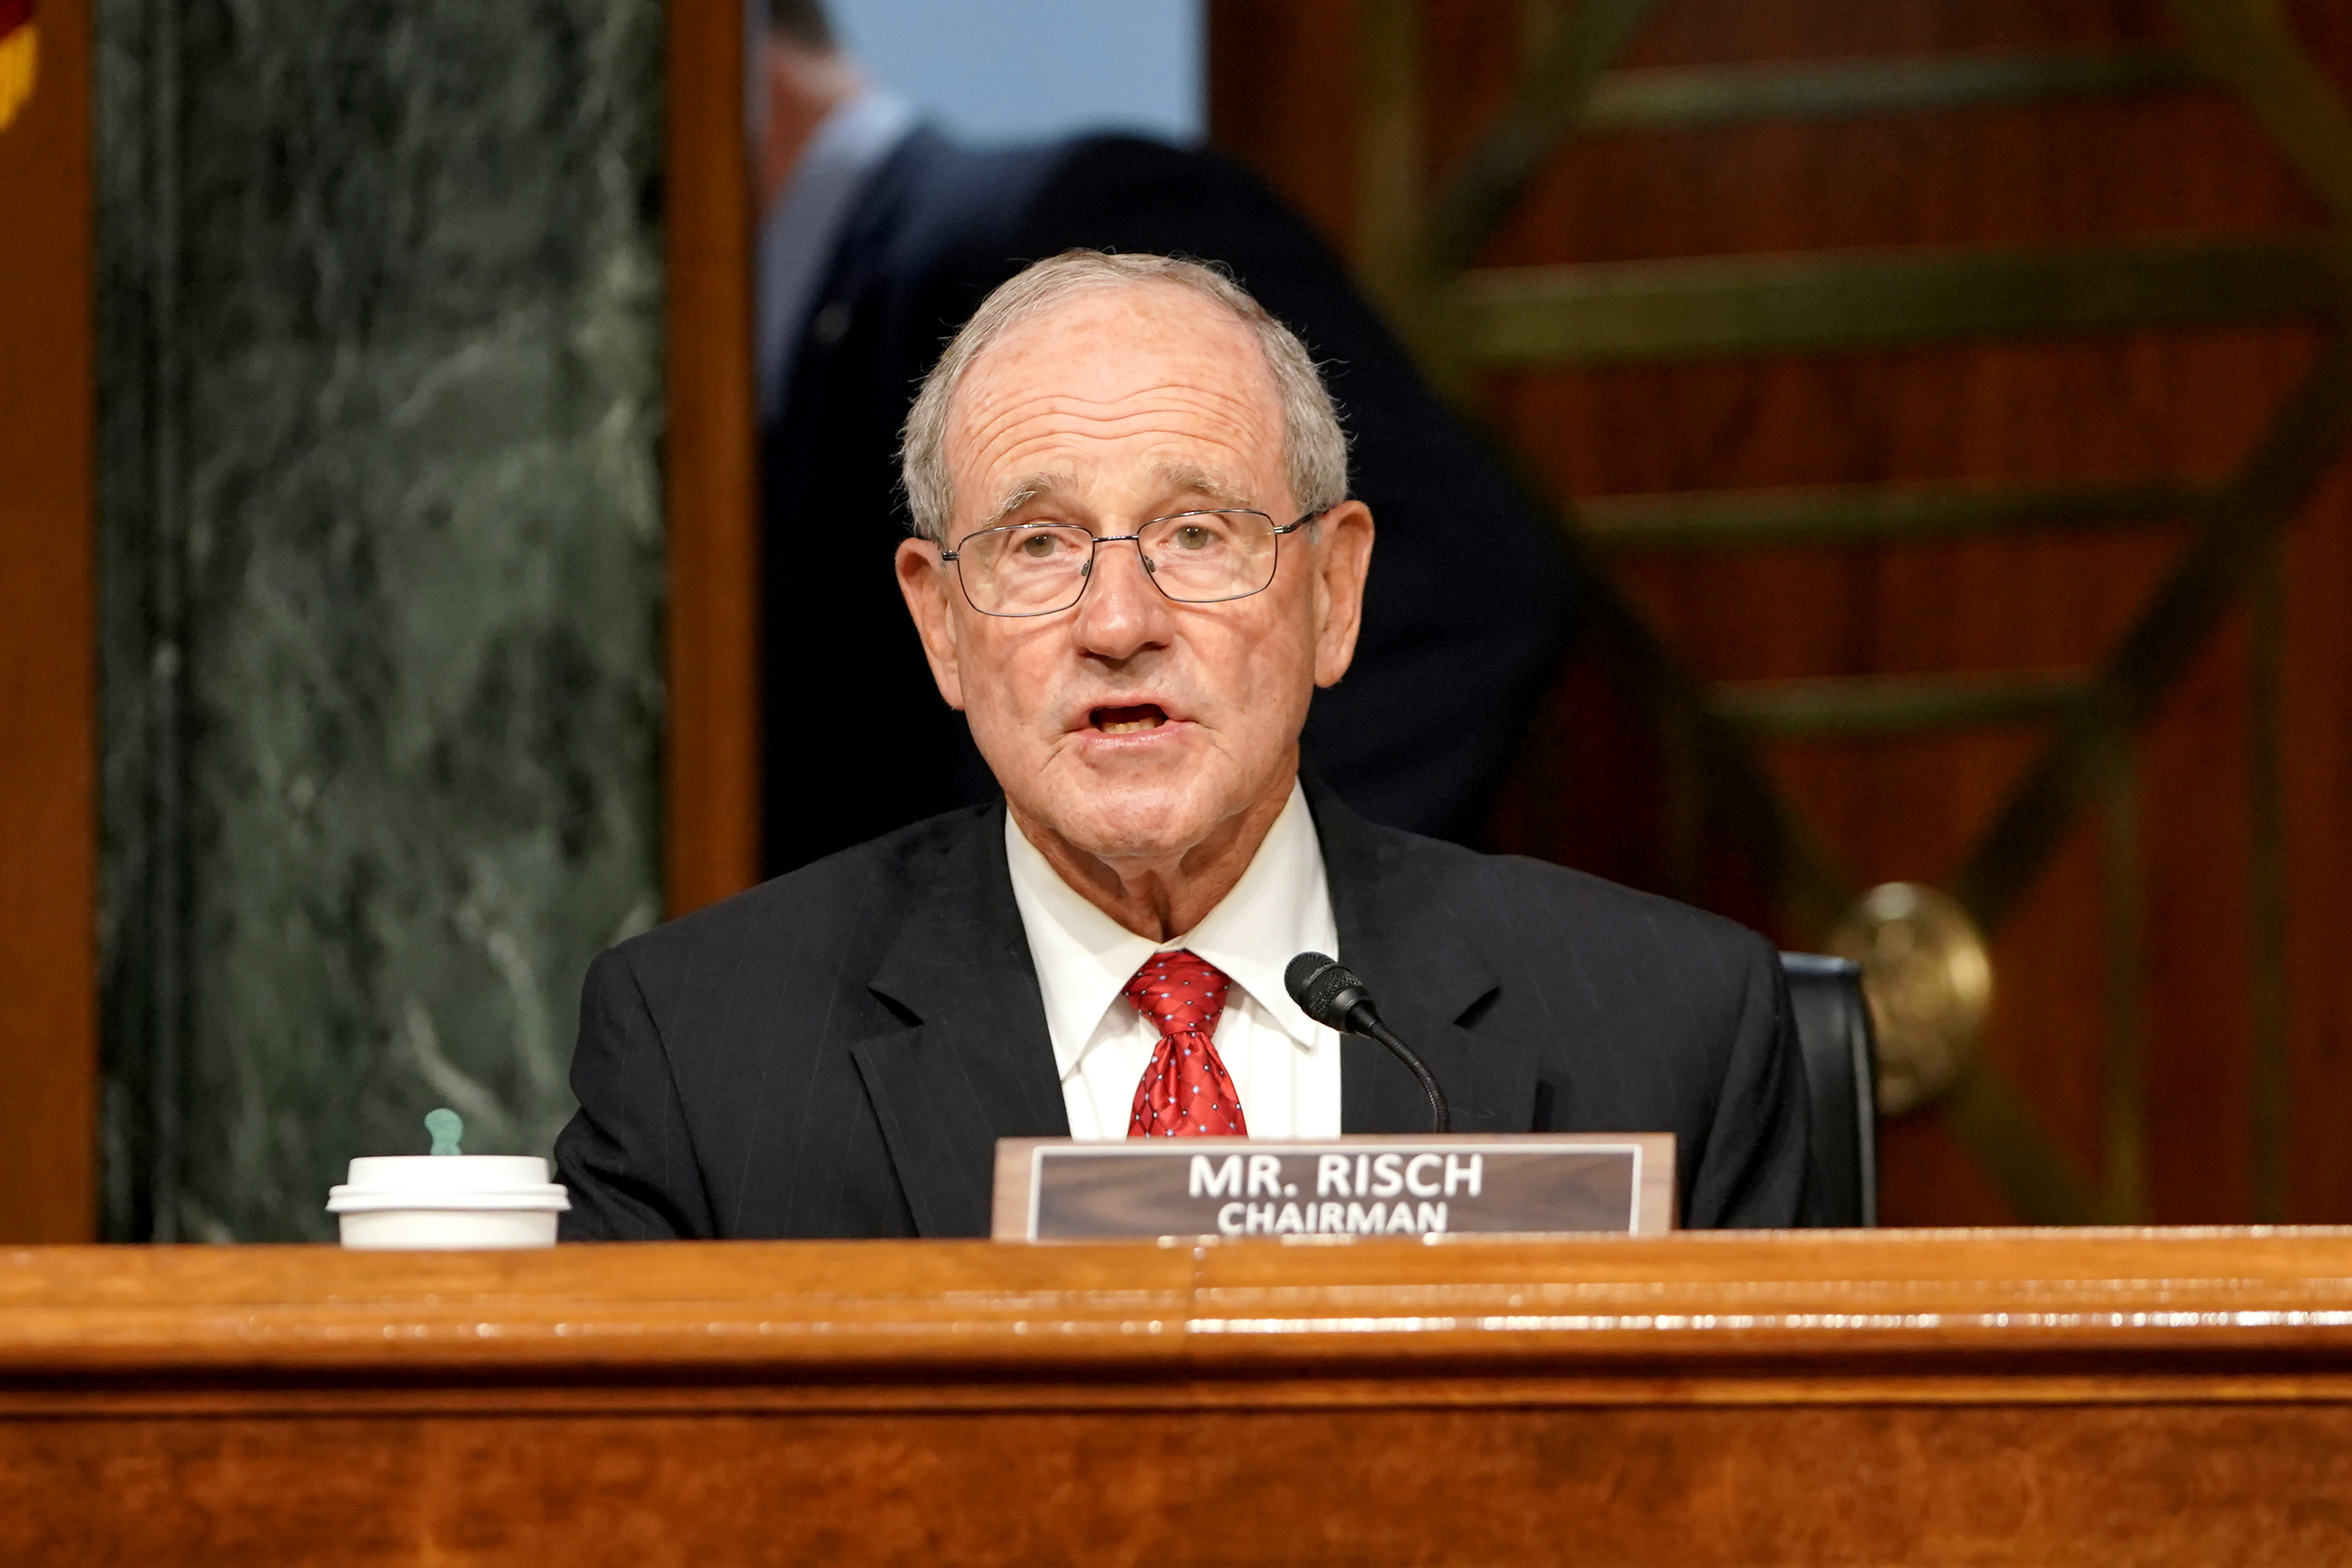 Committee chairman Jim Risch (R-ID) speaks during a Senate Foreign Relations Committee hearing in Washington, DC, U.S. July 30, 2020. Greg Nash/Pool via REUTERS